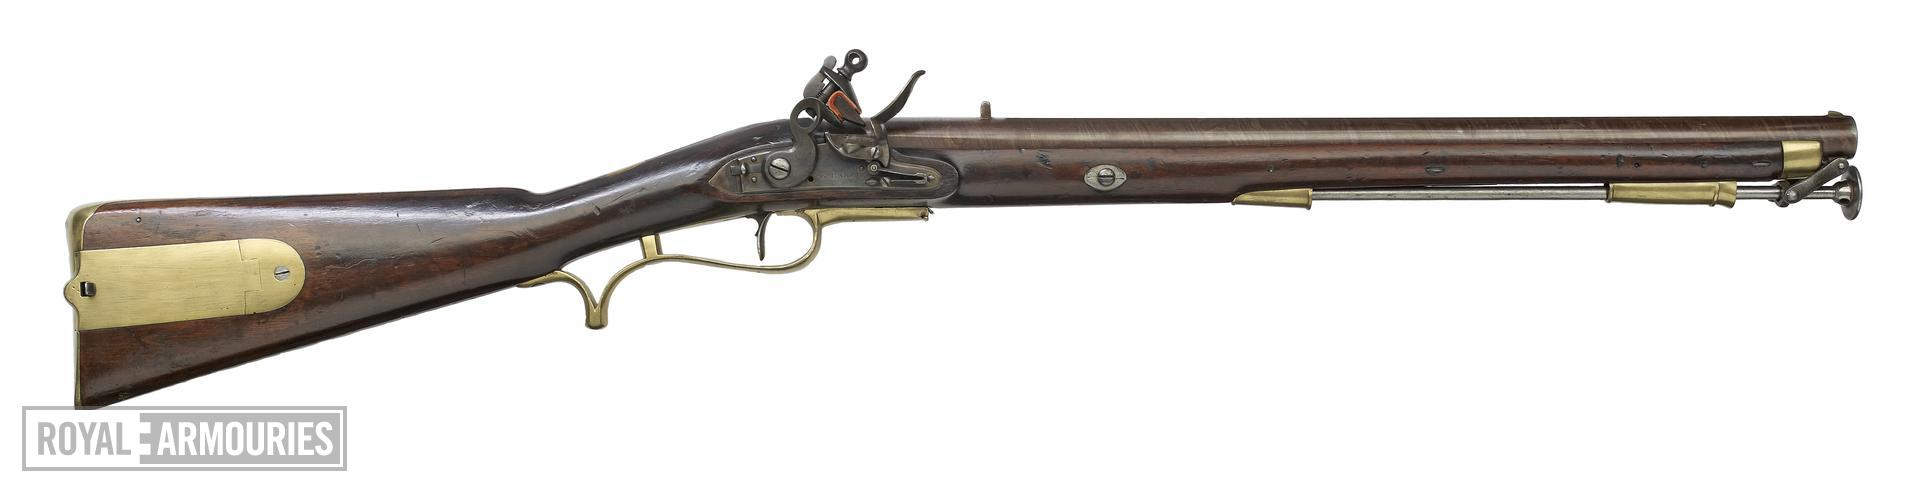 Flintlock muzzle-loading military carbine - Baker Carbine, Pattern 1803